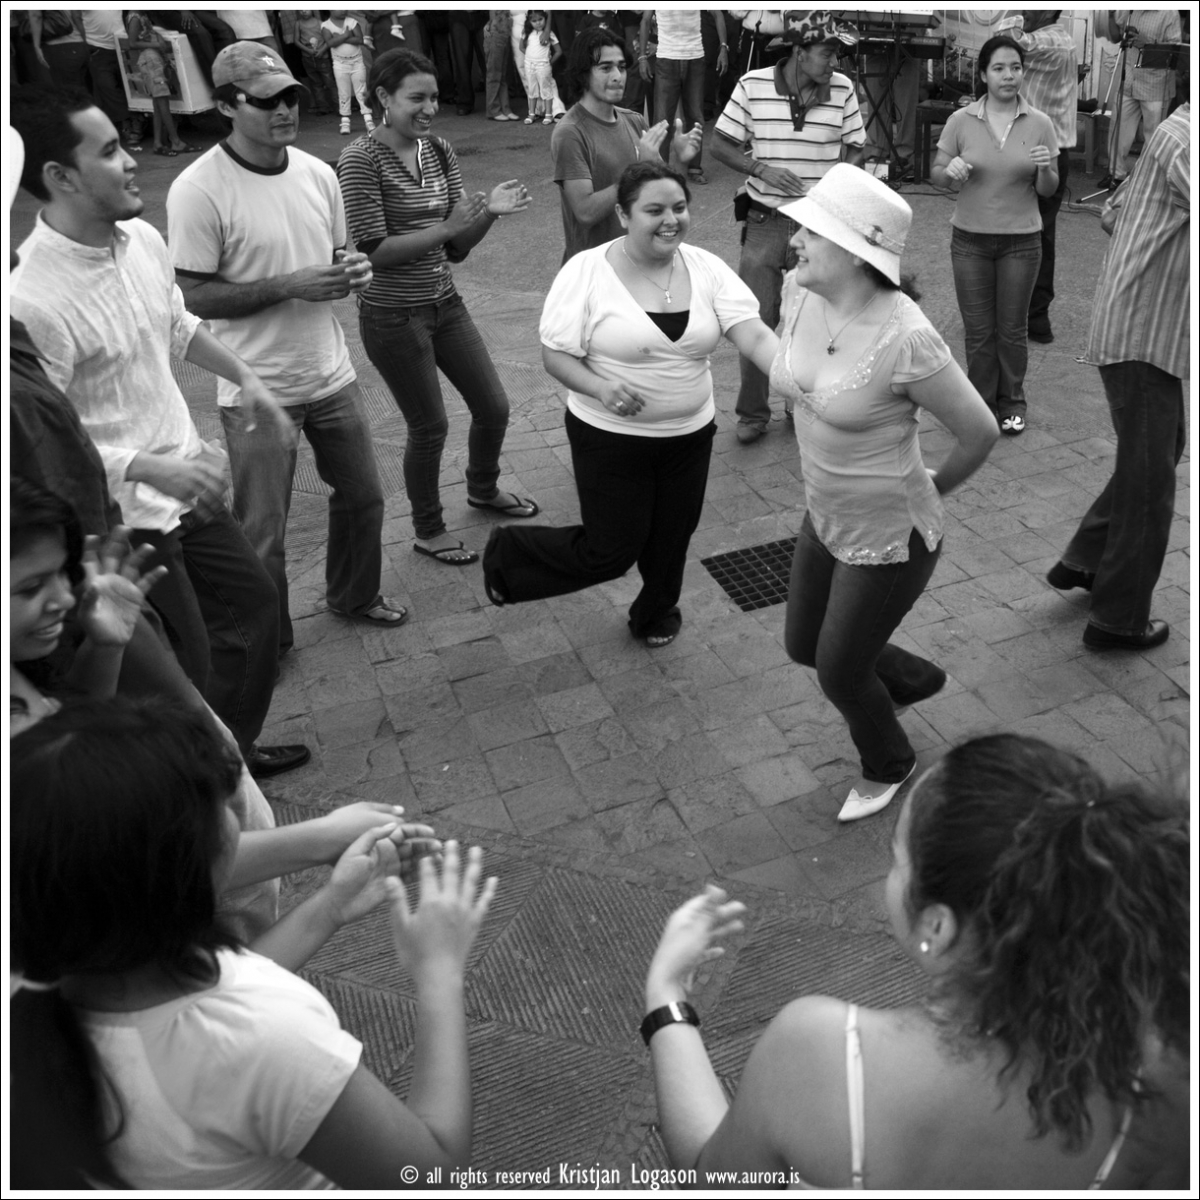 People gathered for fun at sunday dancing on the main square in Grenada, Nicaragua